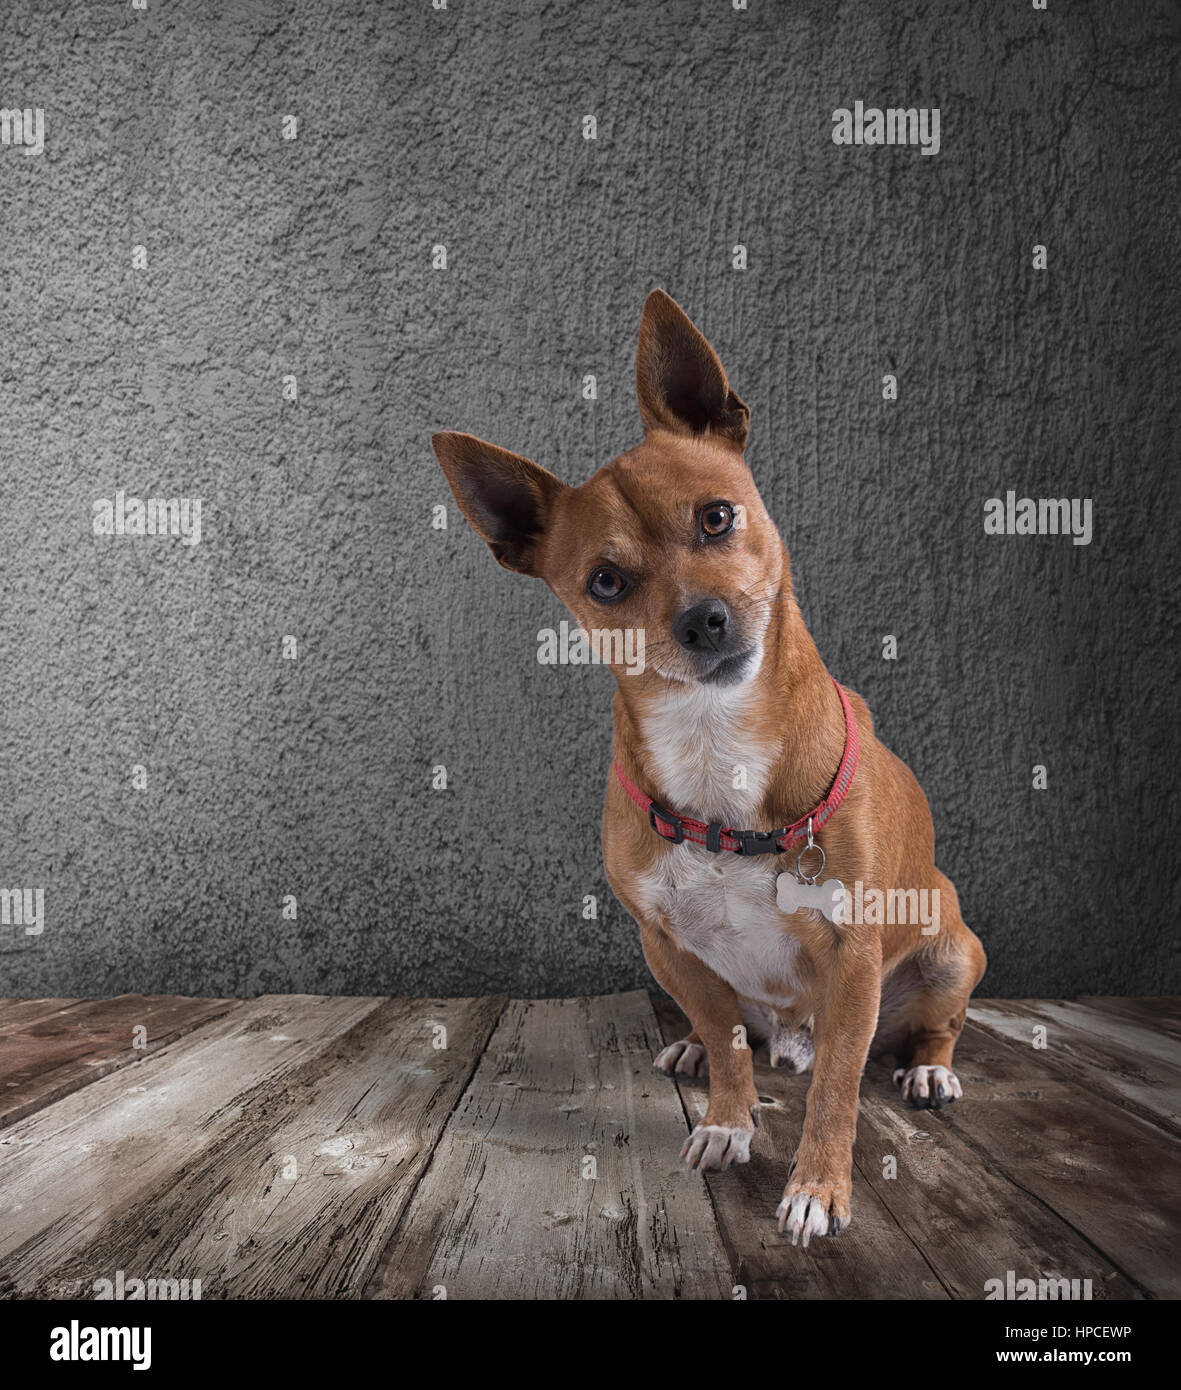 Chien avec expression interrogateur Photo Stock